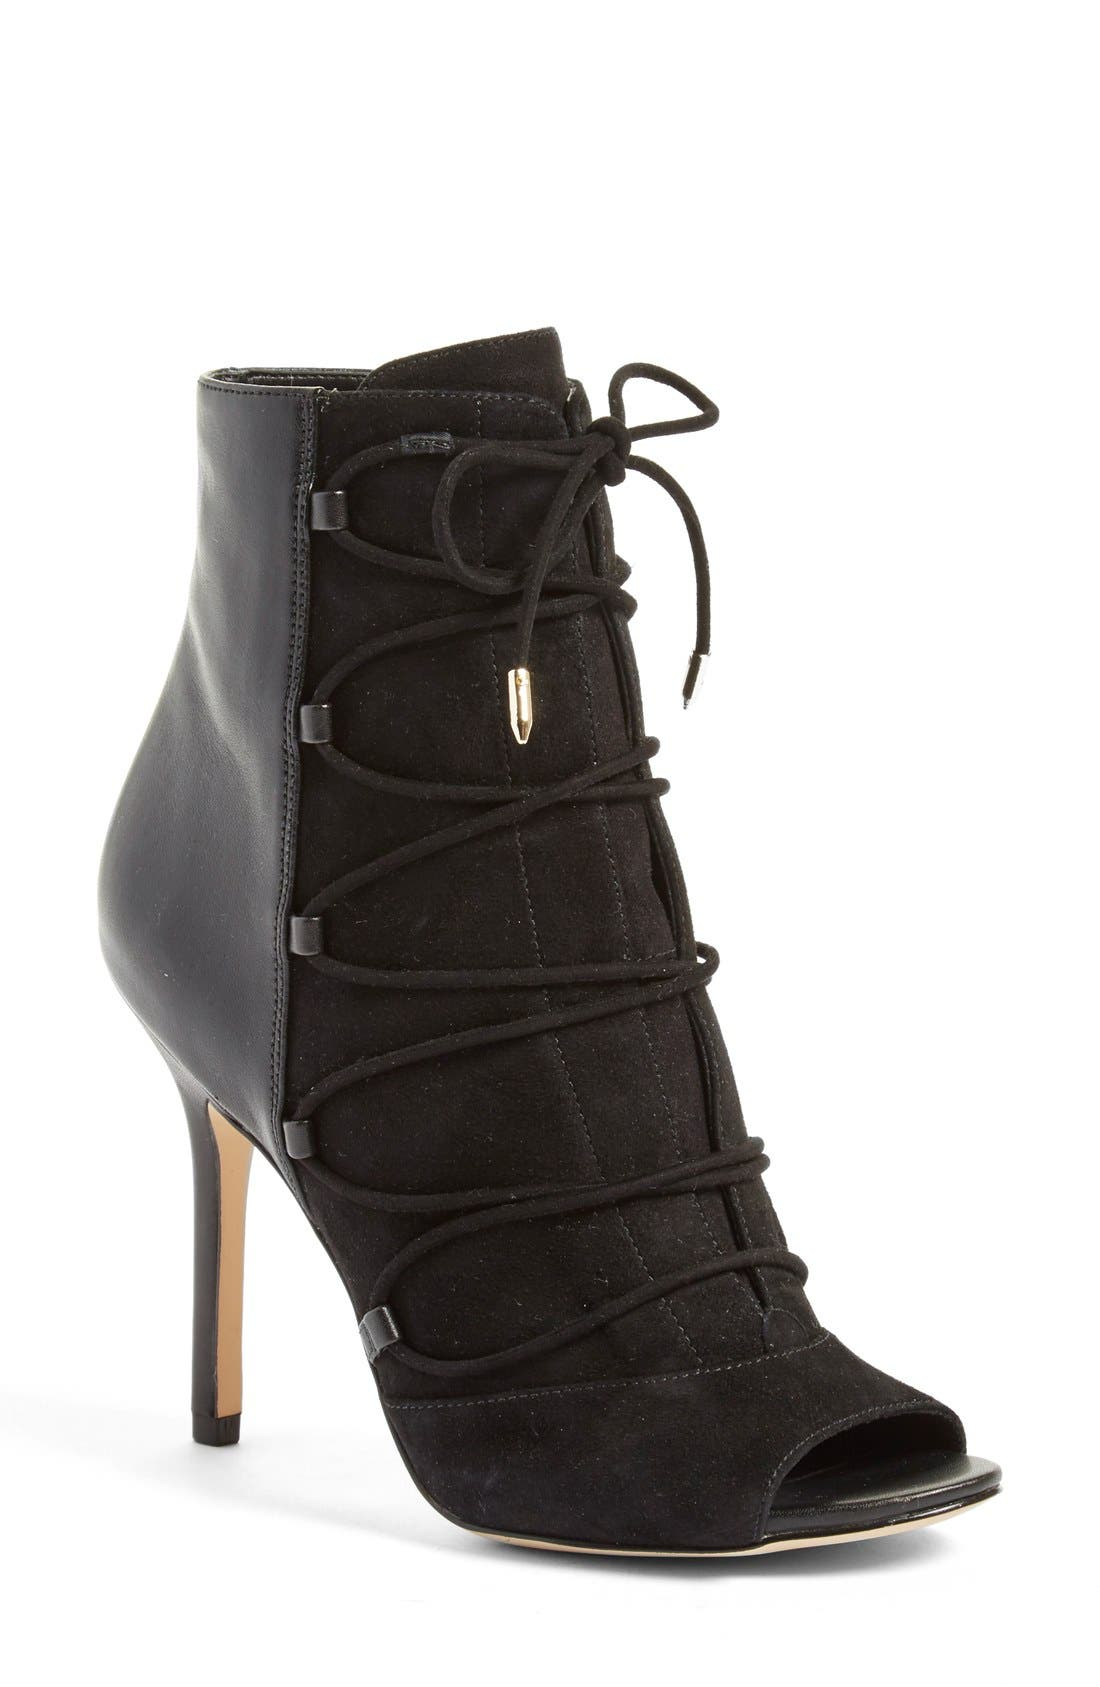 'Asher' Open Toe Bootie,                             Main thumbnail 1, color,                             001